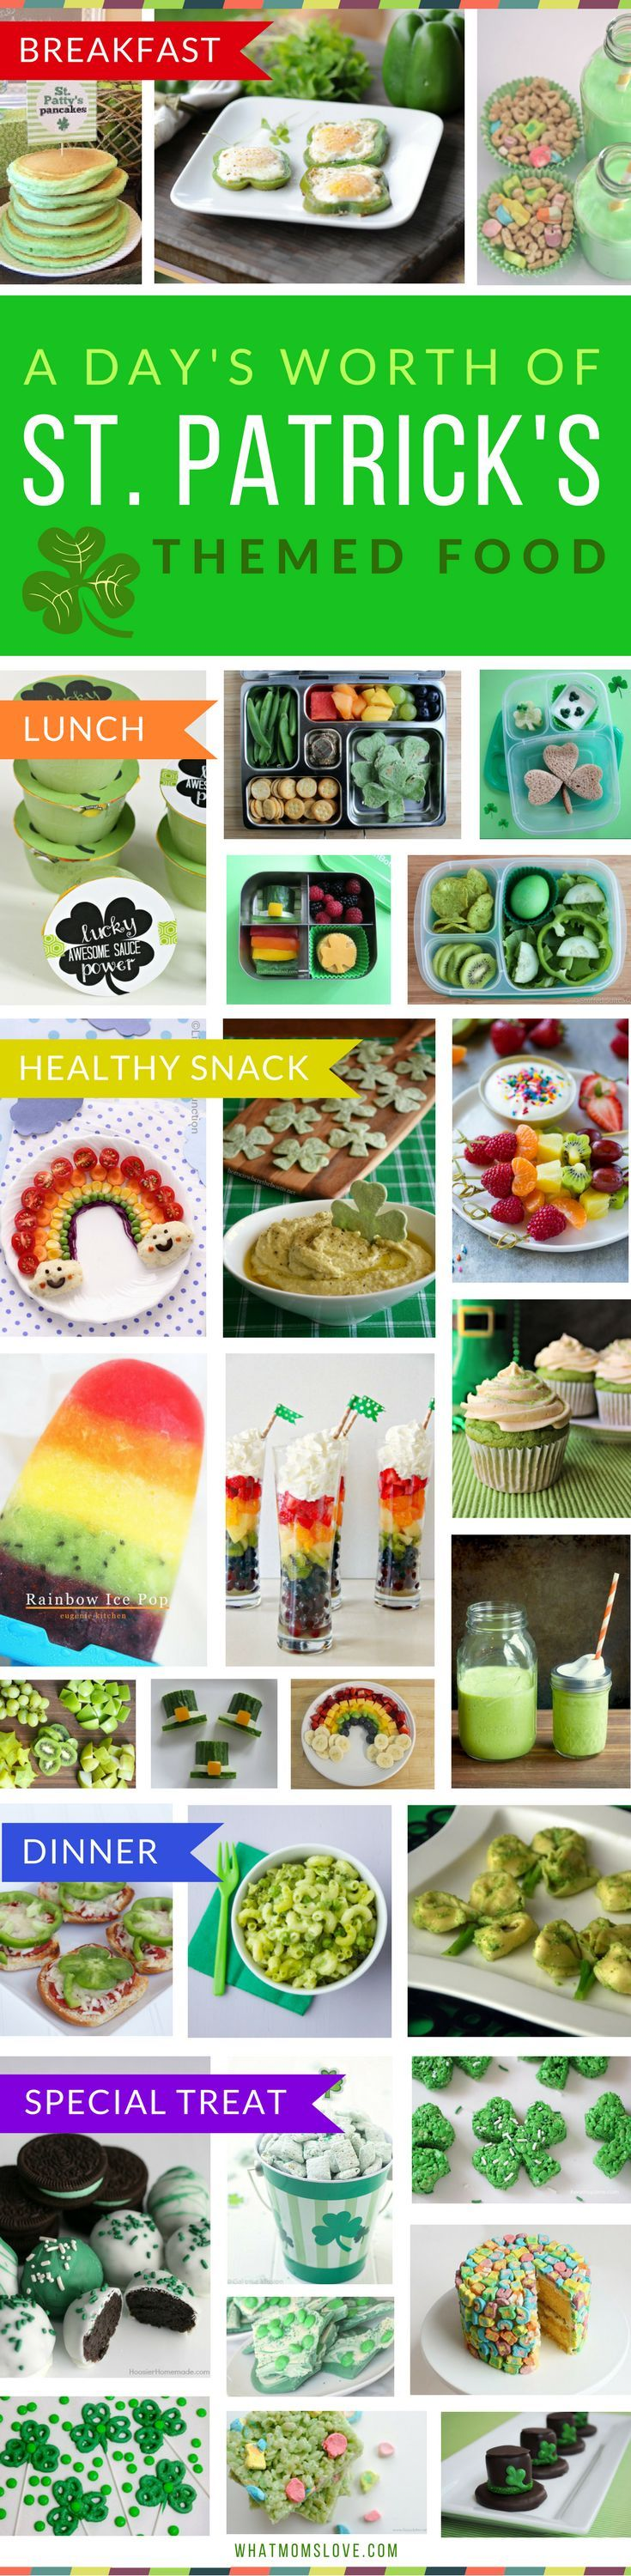 Healthy St Patricks Day Food Ideas. Forget the traditional potatoes and soda bread - reach for these green and rainbow inspired foods instead that your kids will love. Ideas for breakfast, lunch (bento box!), dinner and healthy snacks - plus special treat